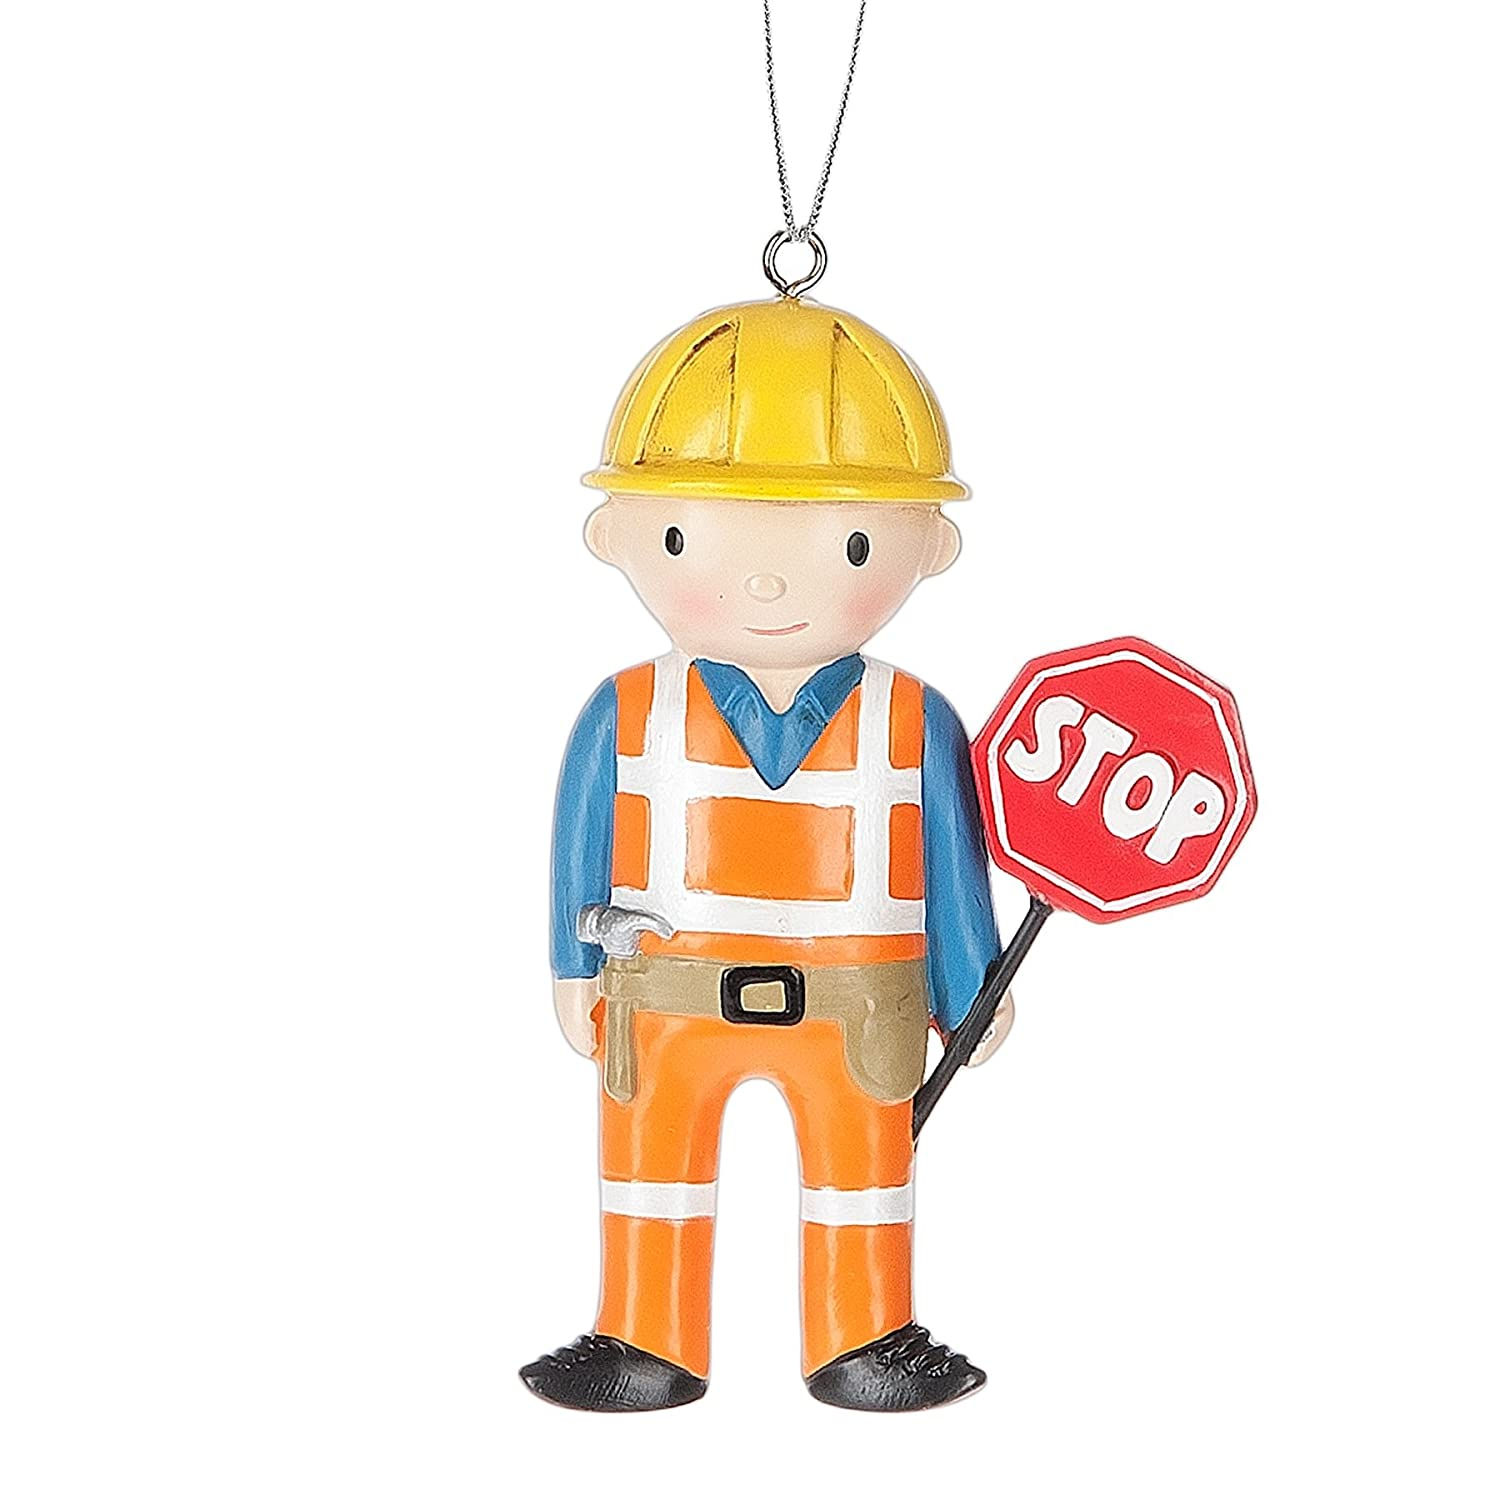 Construction Site Worker Resin Stone Christmas Ornament Figurine